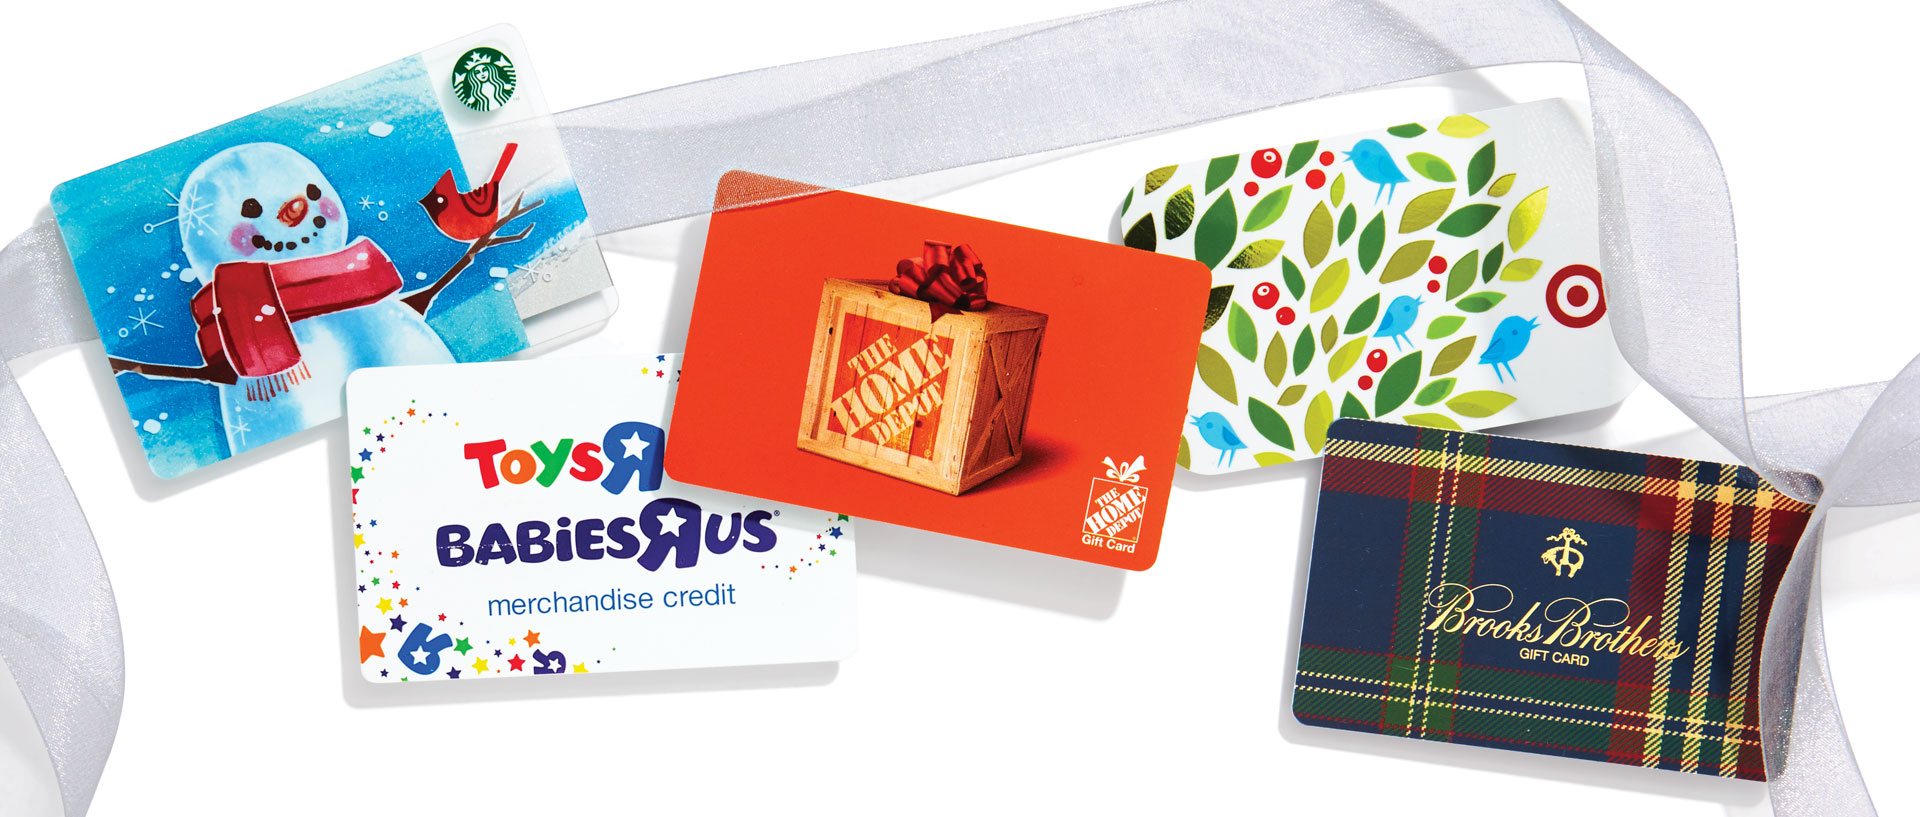 How to Exchange Gift Cards and Get the Most Cash - Consumer Reports